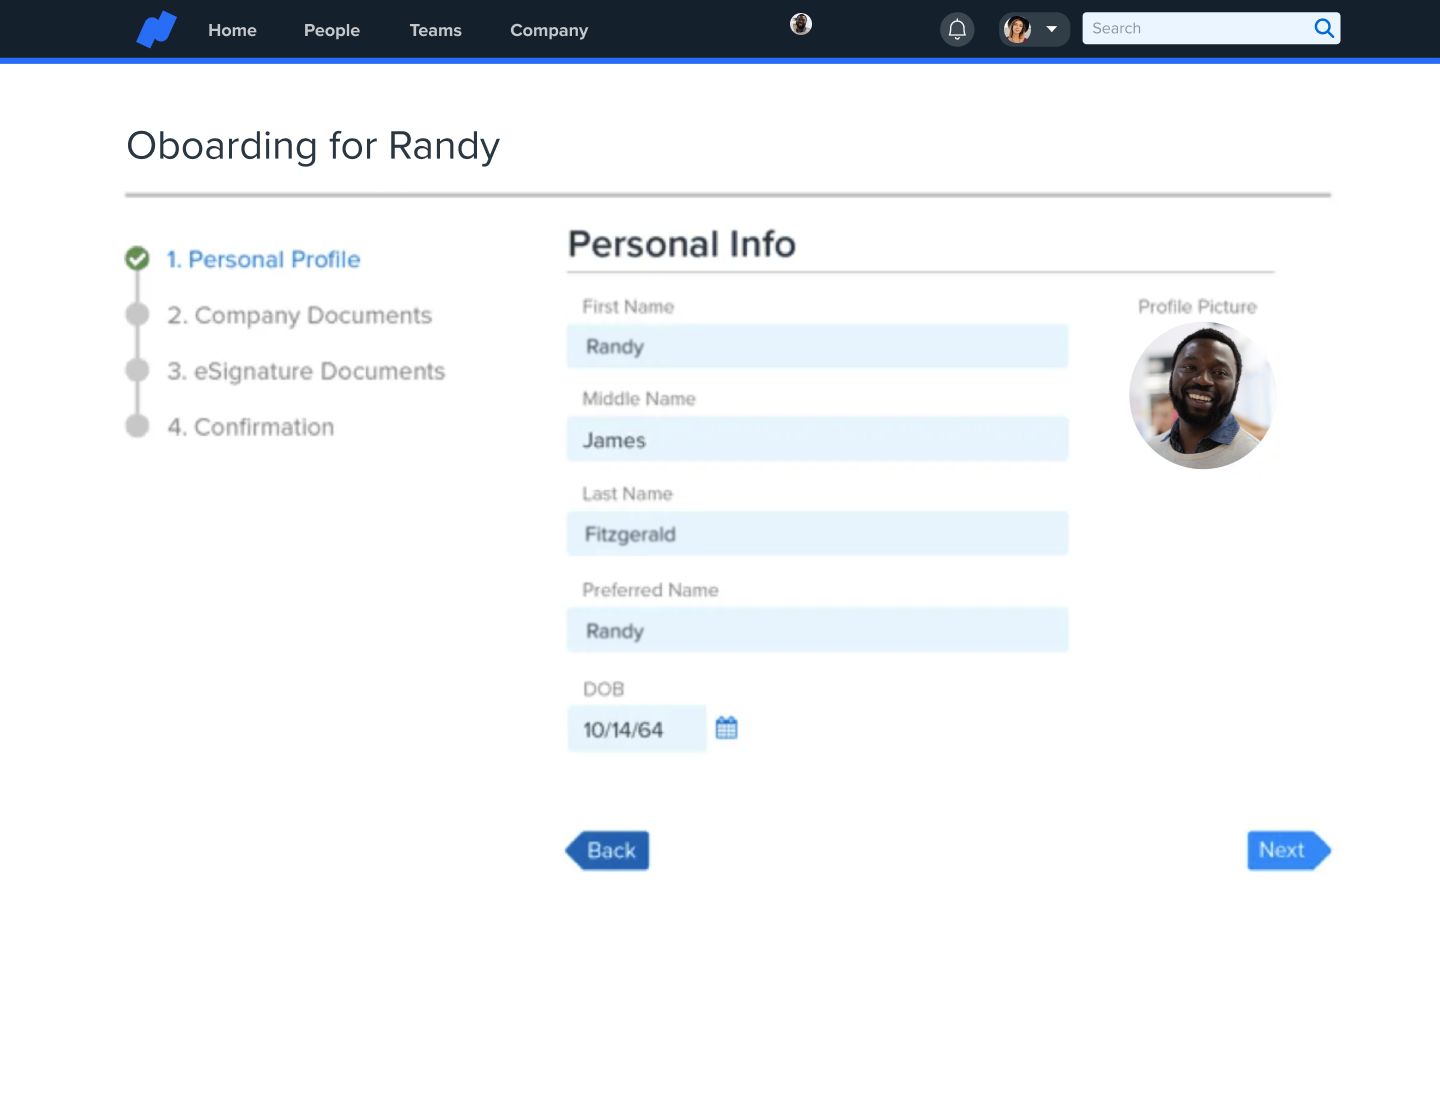 Namely Software - Employee Onboarding: save time and engage new hires before they ever walk in the door with customizable employee onboarding workflows complete with eSignature functionality